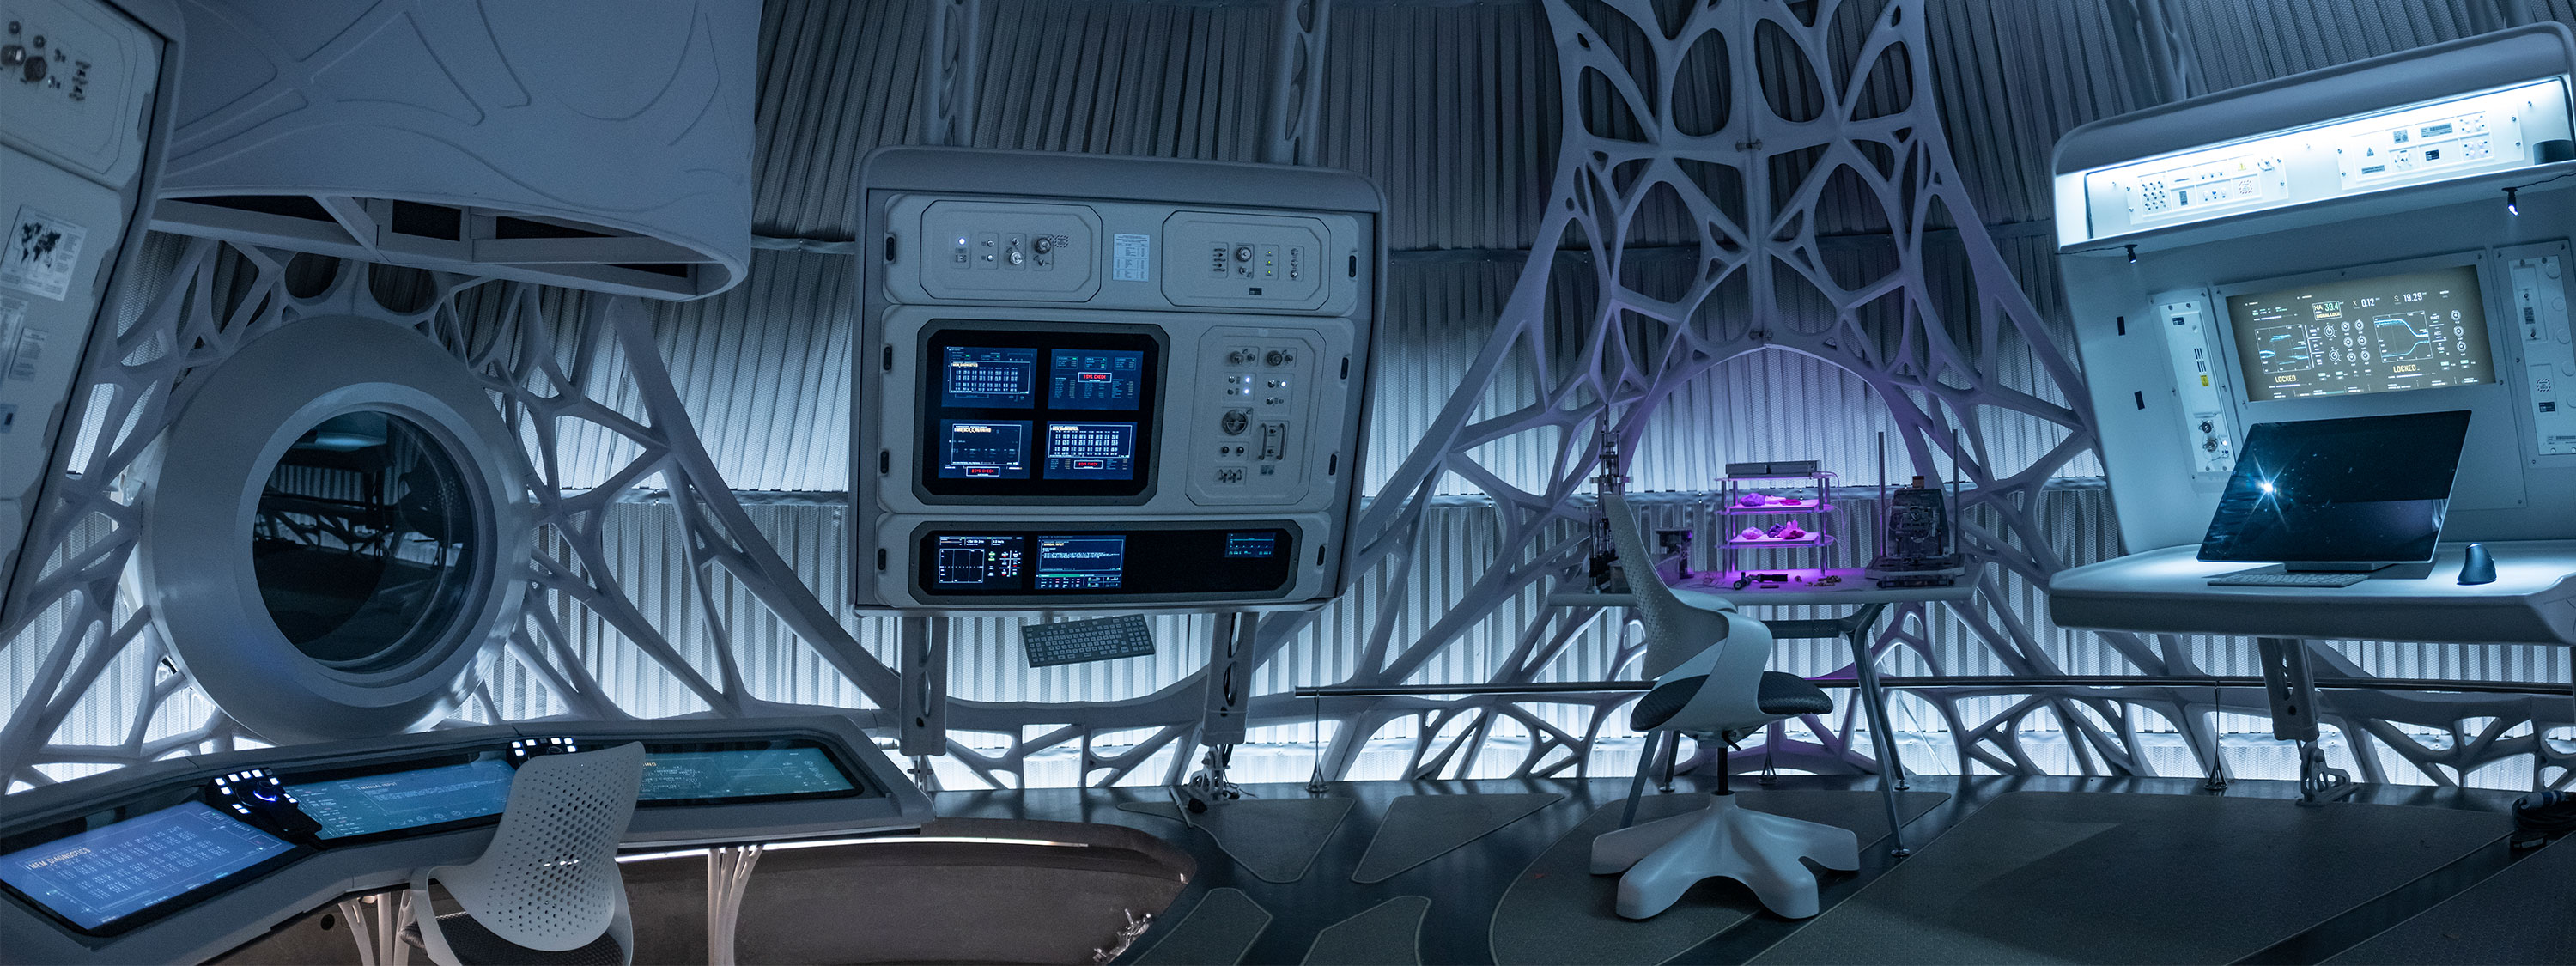 2 men, one woman, one alien and one racoon queuing inside a spaceship (scene from Guardians of the Galaxy)